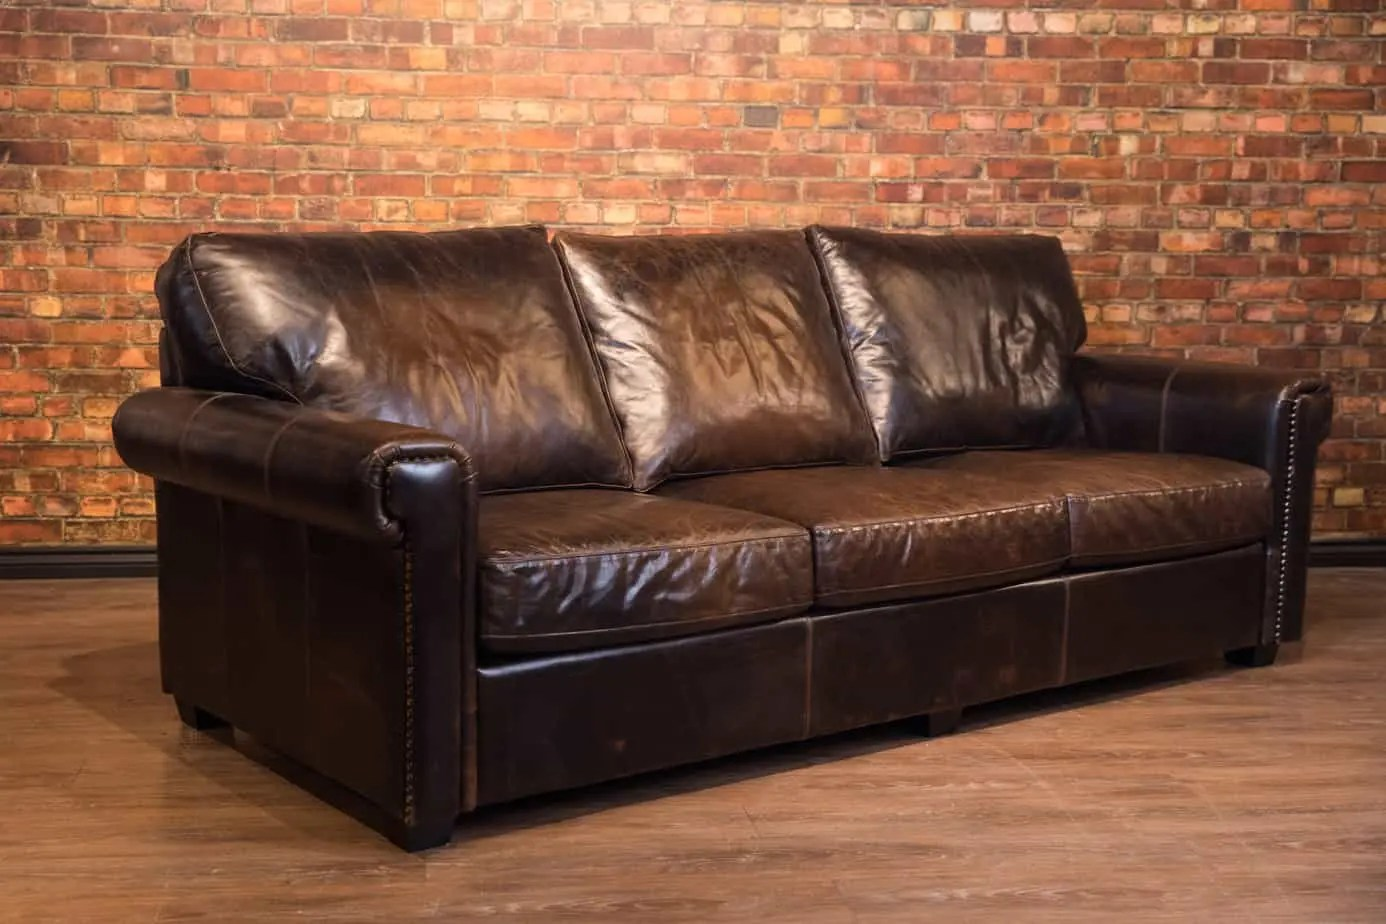 Leather Sofa Houston Houston Leather Sofa Canada 39s Boss Leather Sofas And